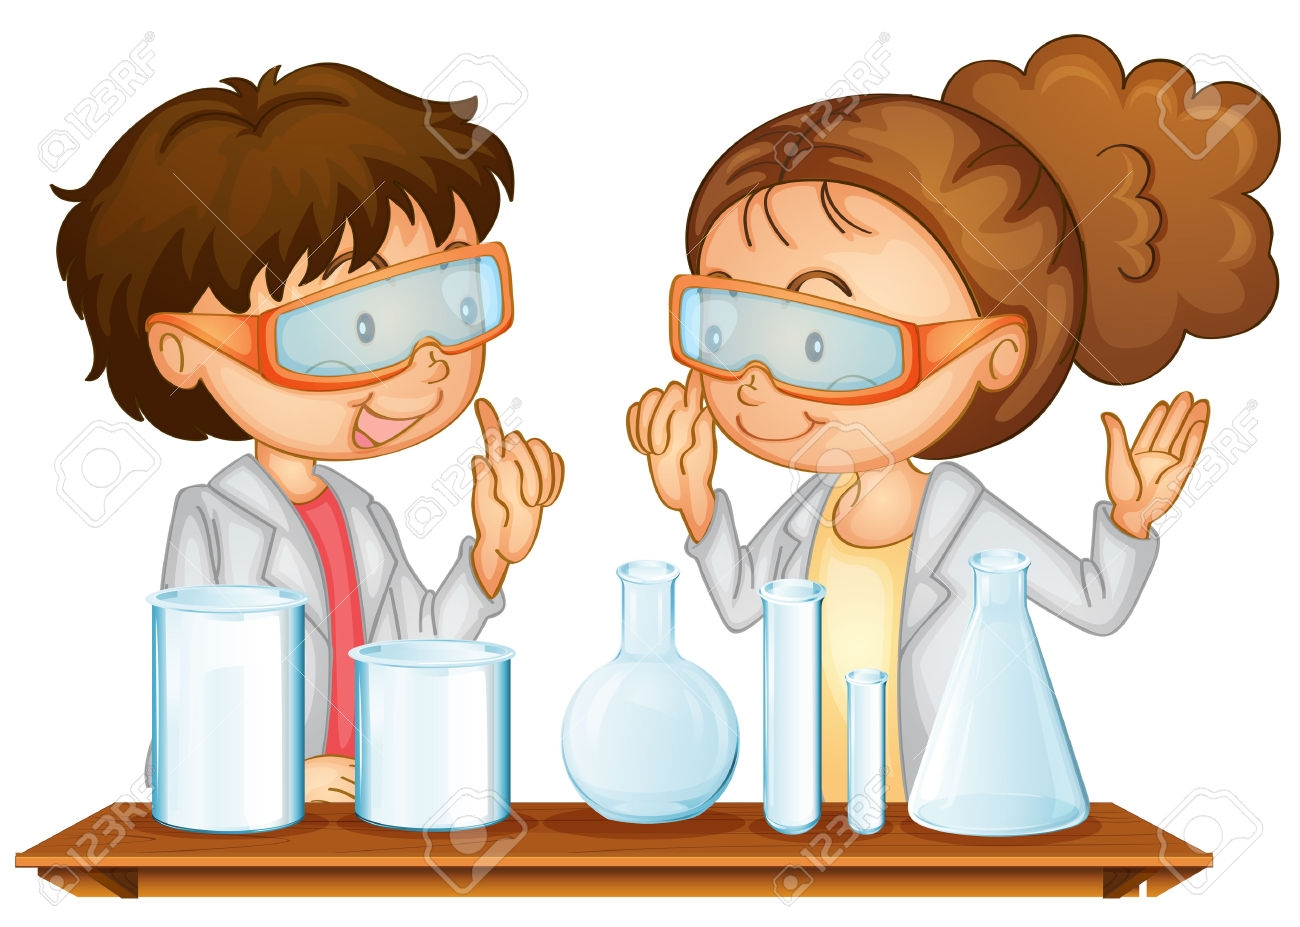 Science Student Clip Art.